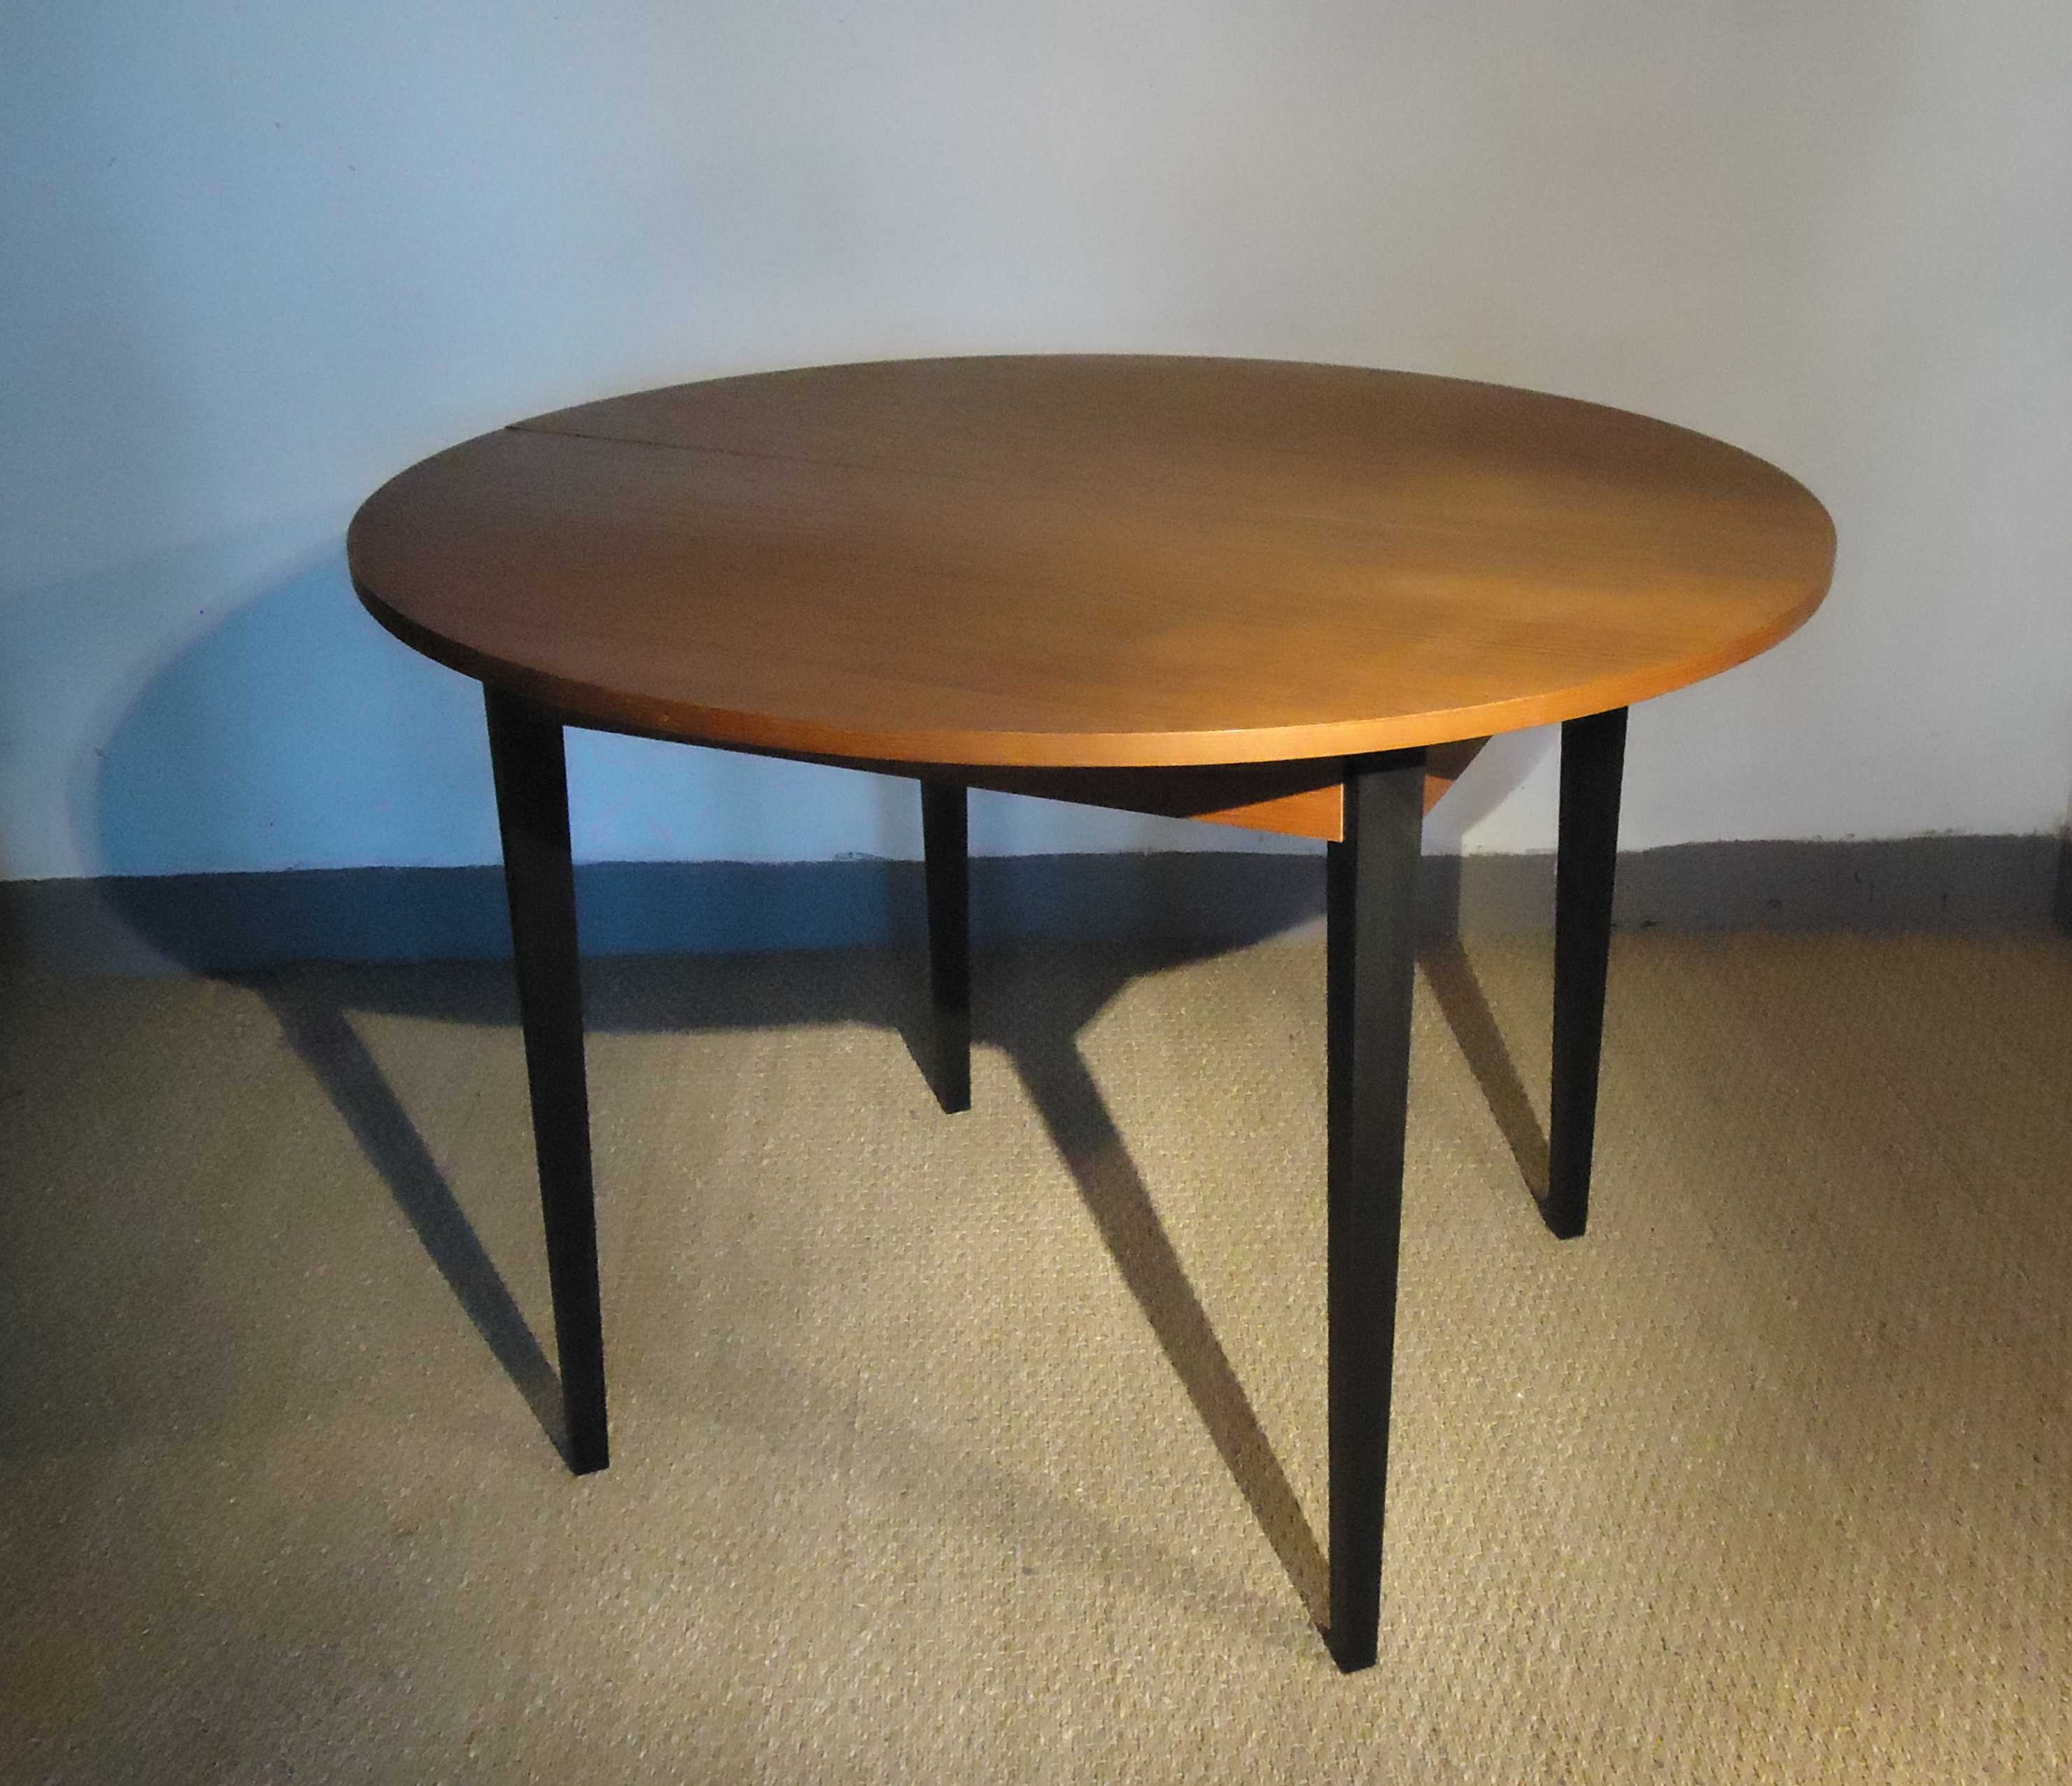 Table Ronde Scandinave Rallonge Table Ronde Scandinave Vendu Lu Bee